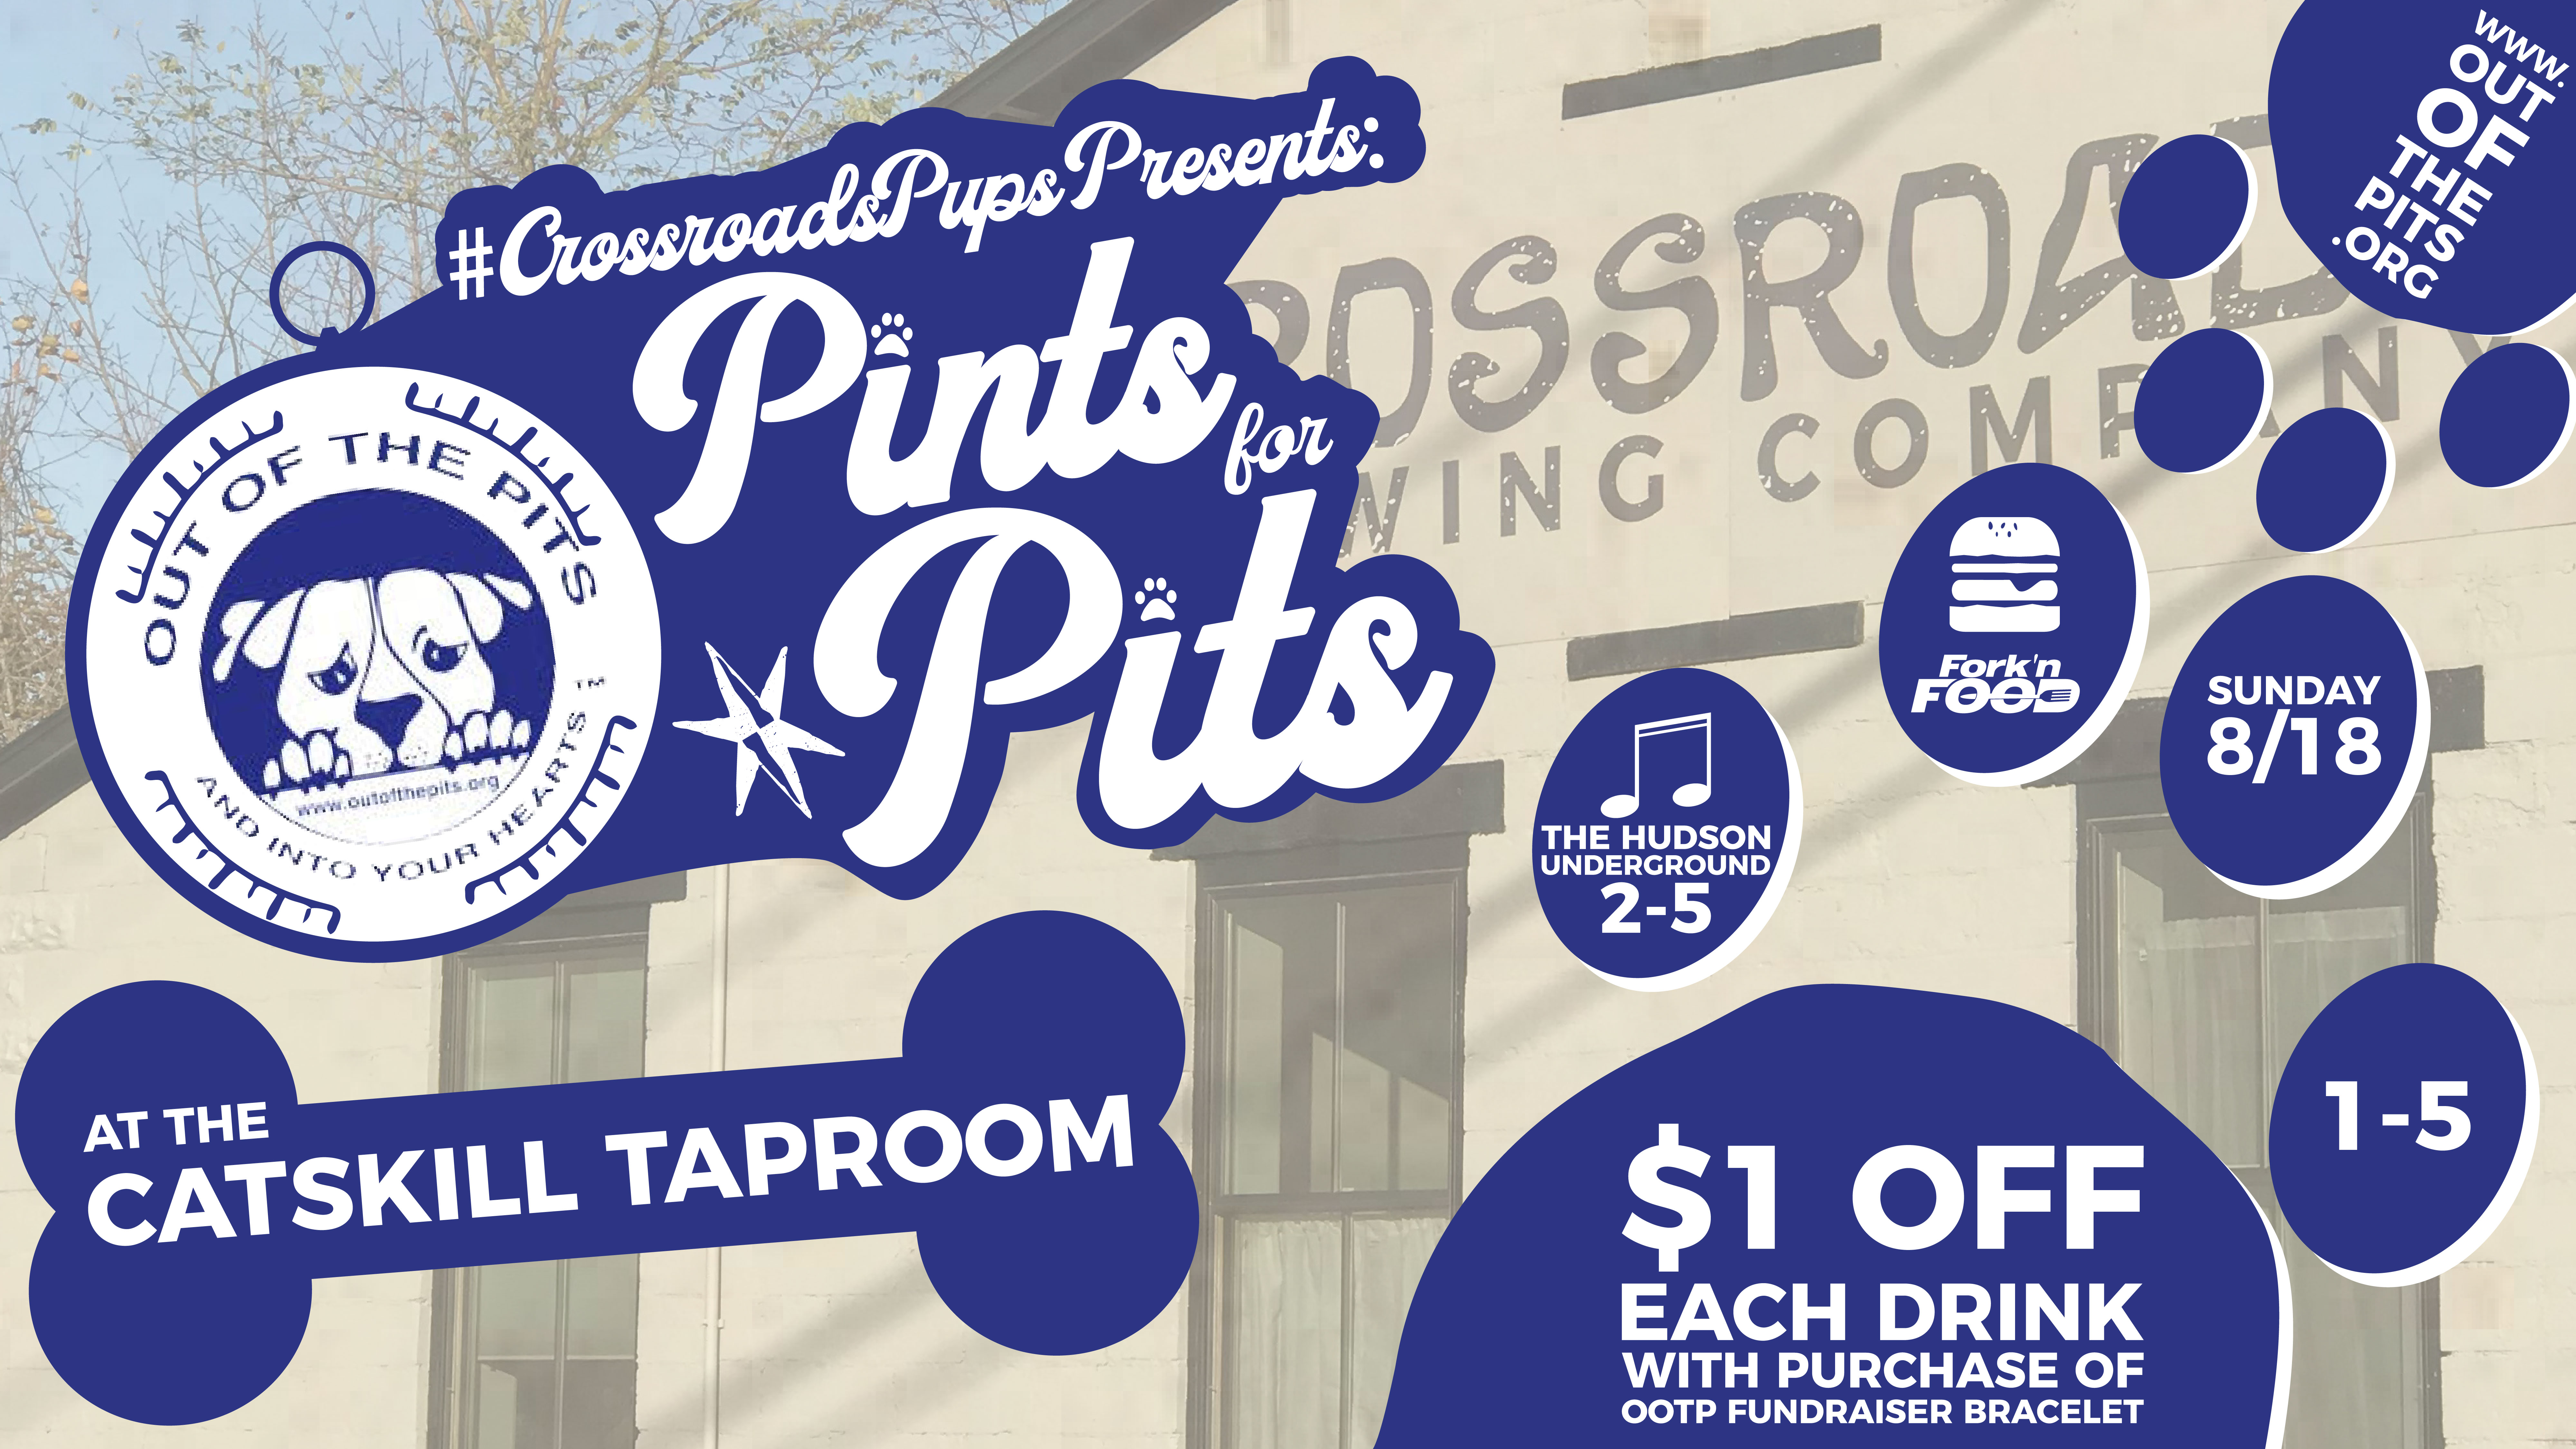 Pints for Pits Fundraiser Ad